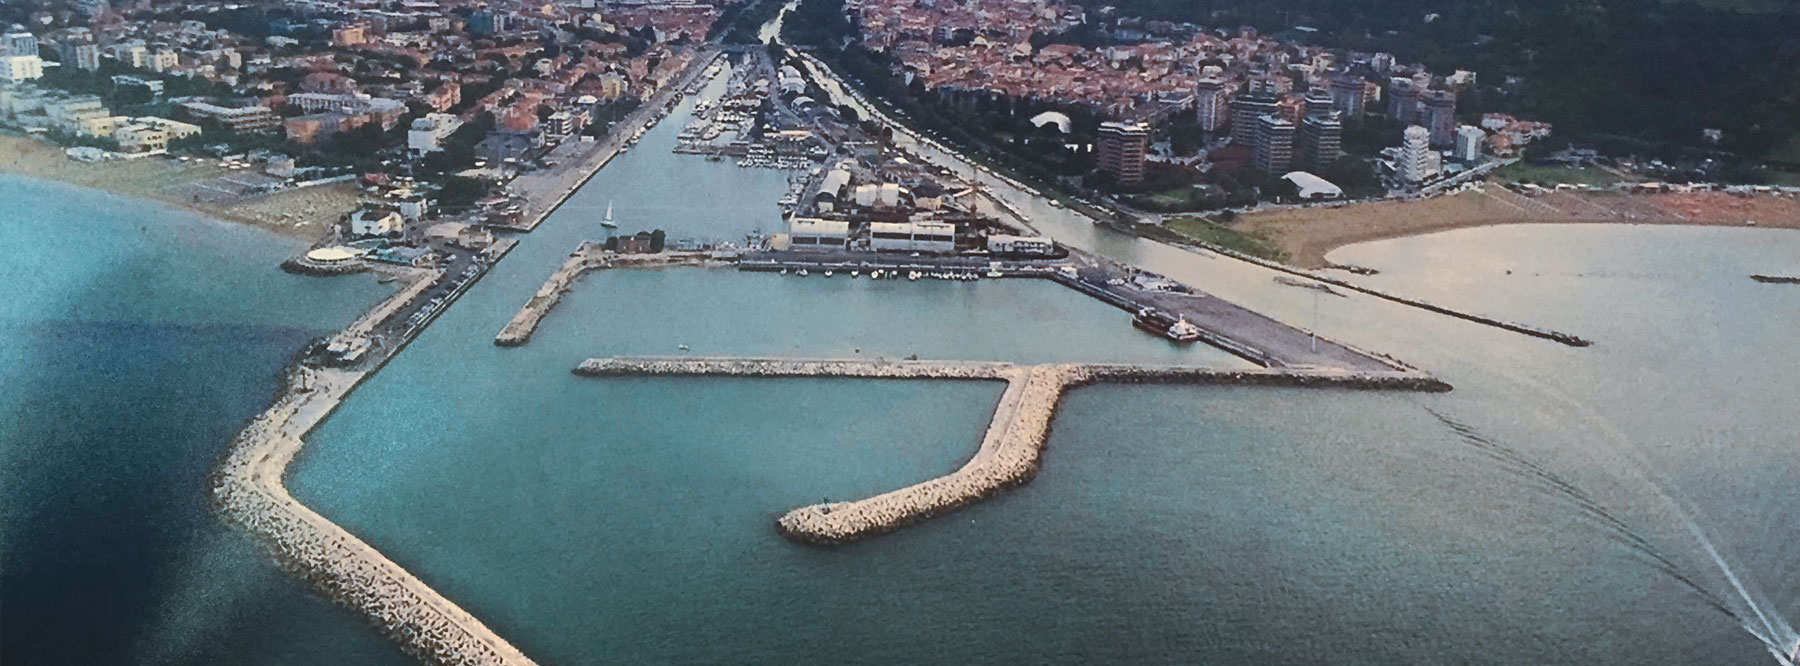 Port of Pesaro